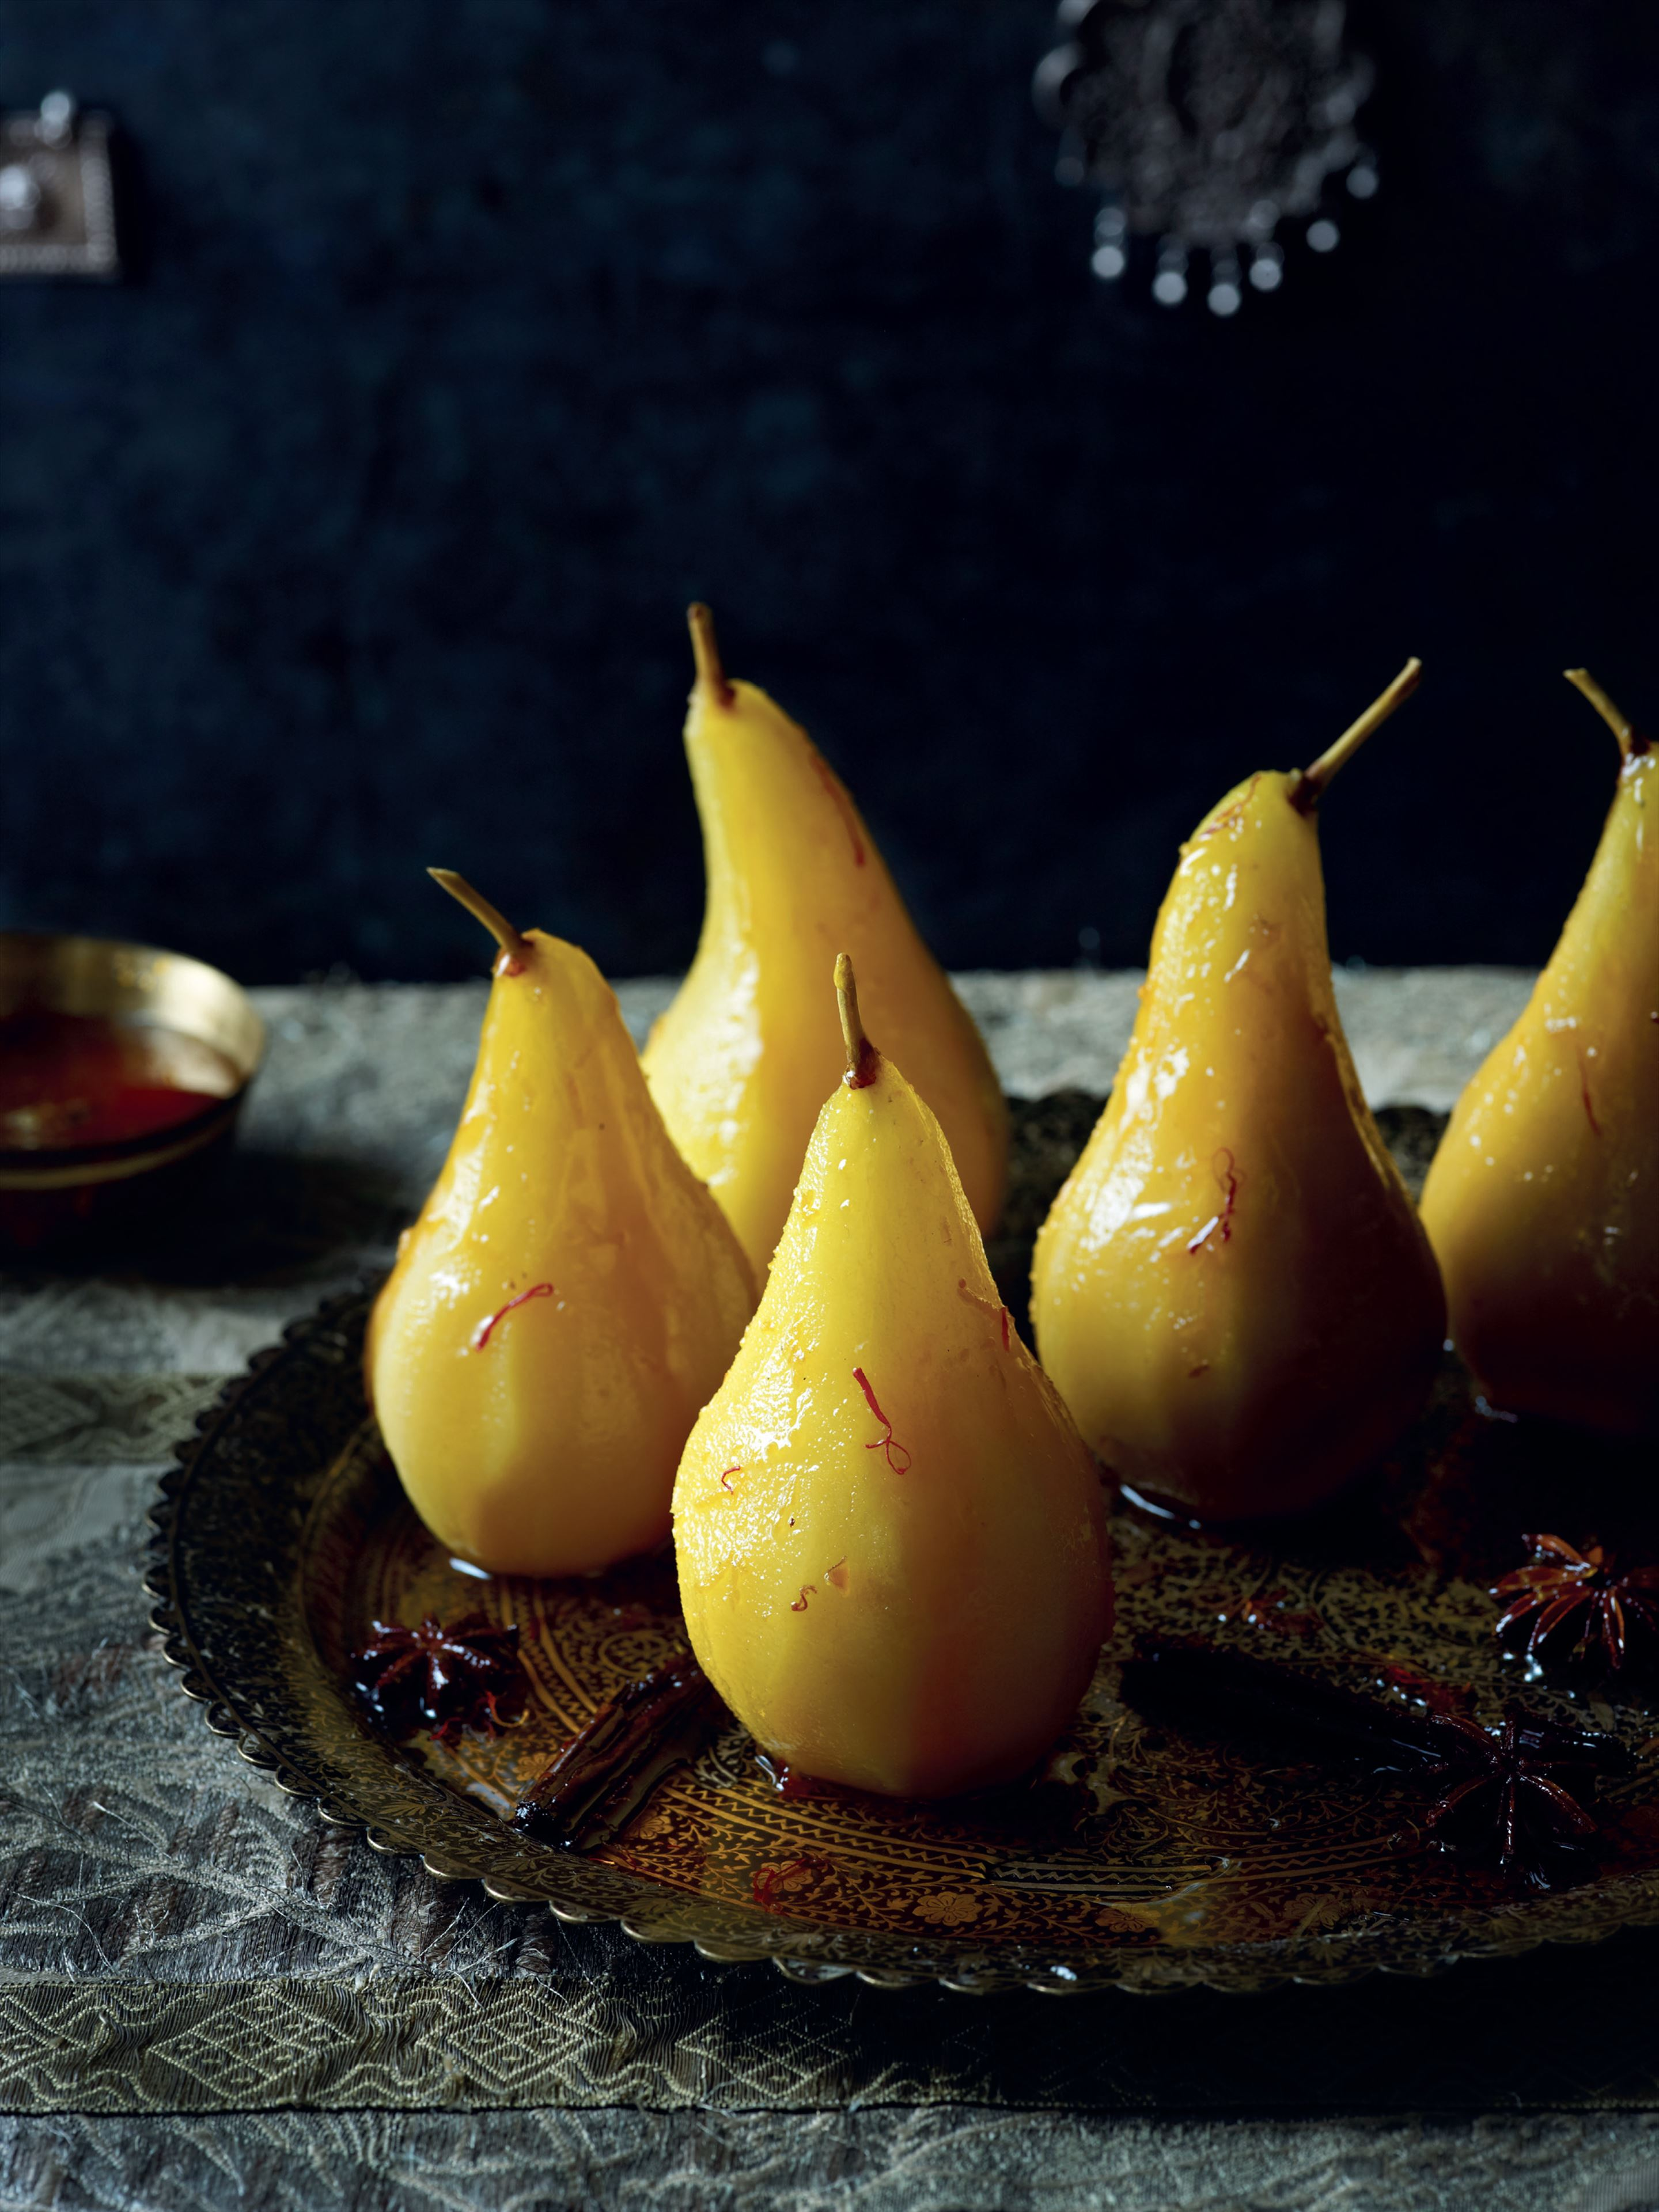 Poached pears with saffron, cinnamon and star anise